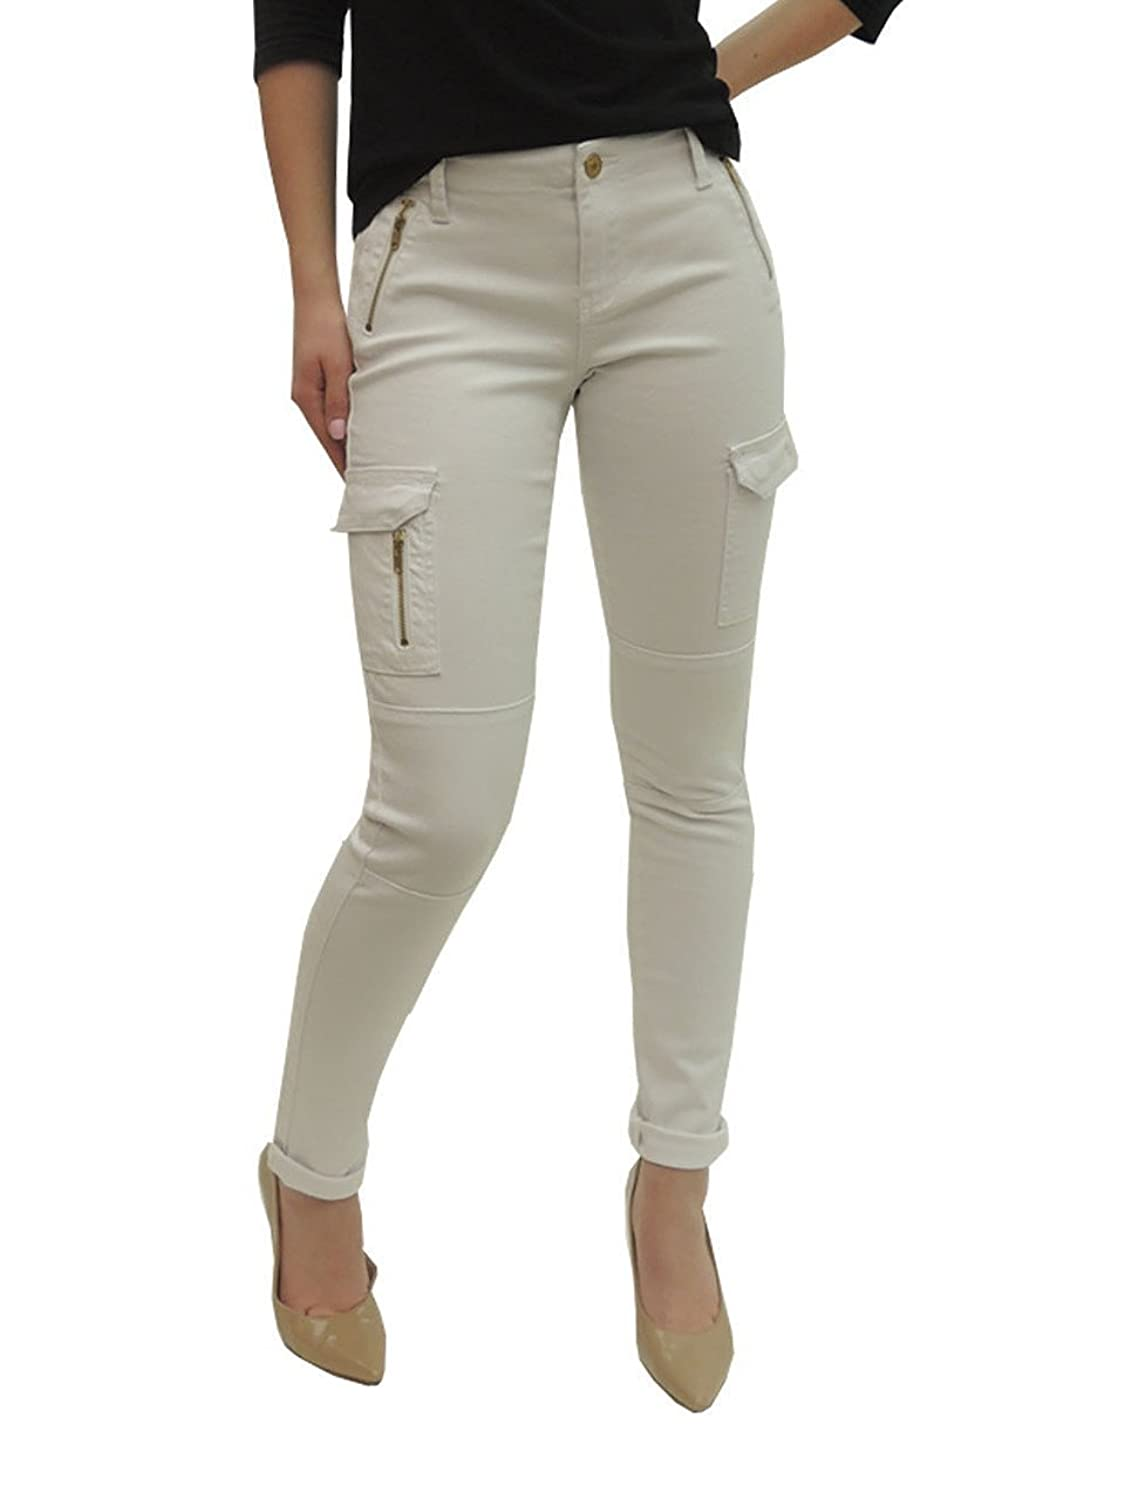 Goodfathers Womens Elite Jeans Skinny Cargo Pant With Zipper Jeans